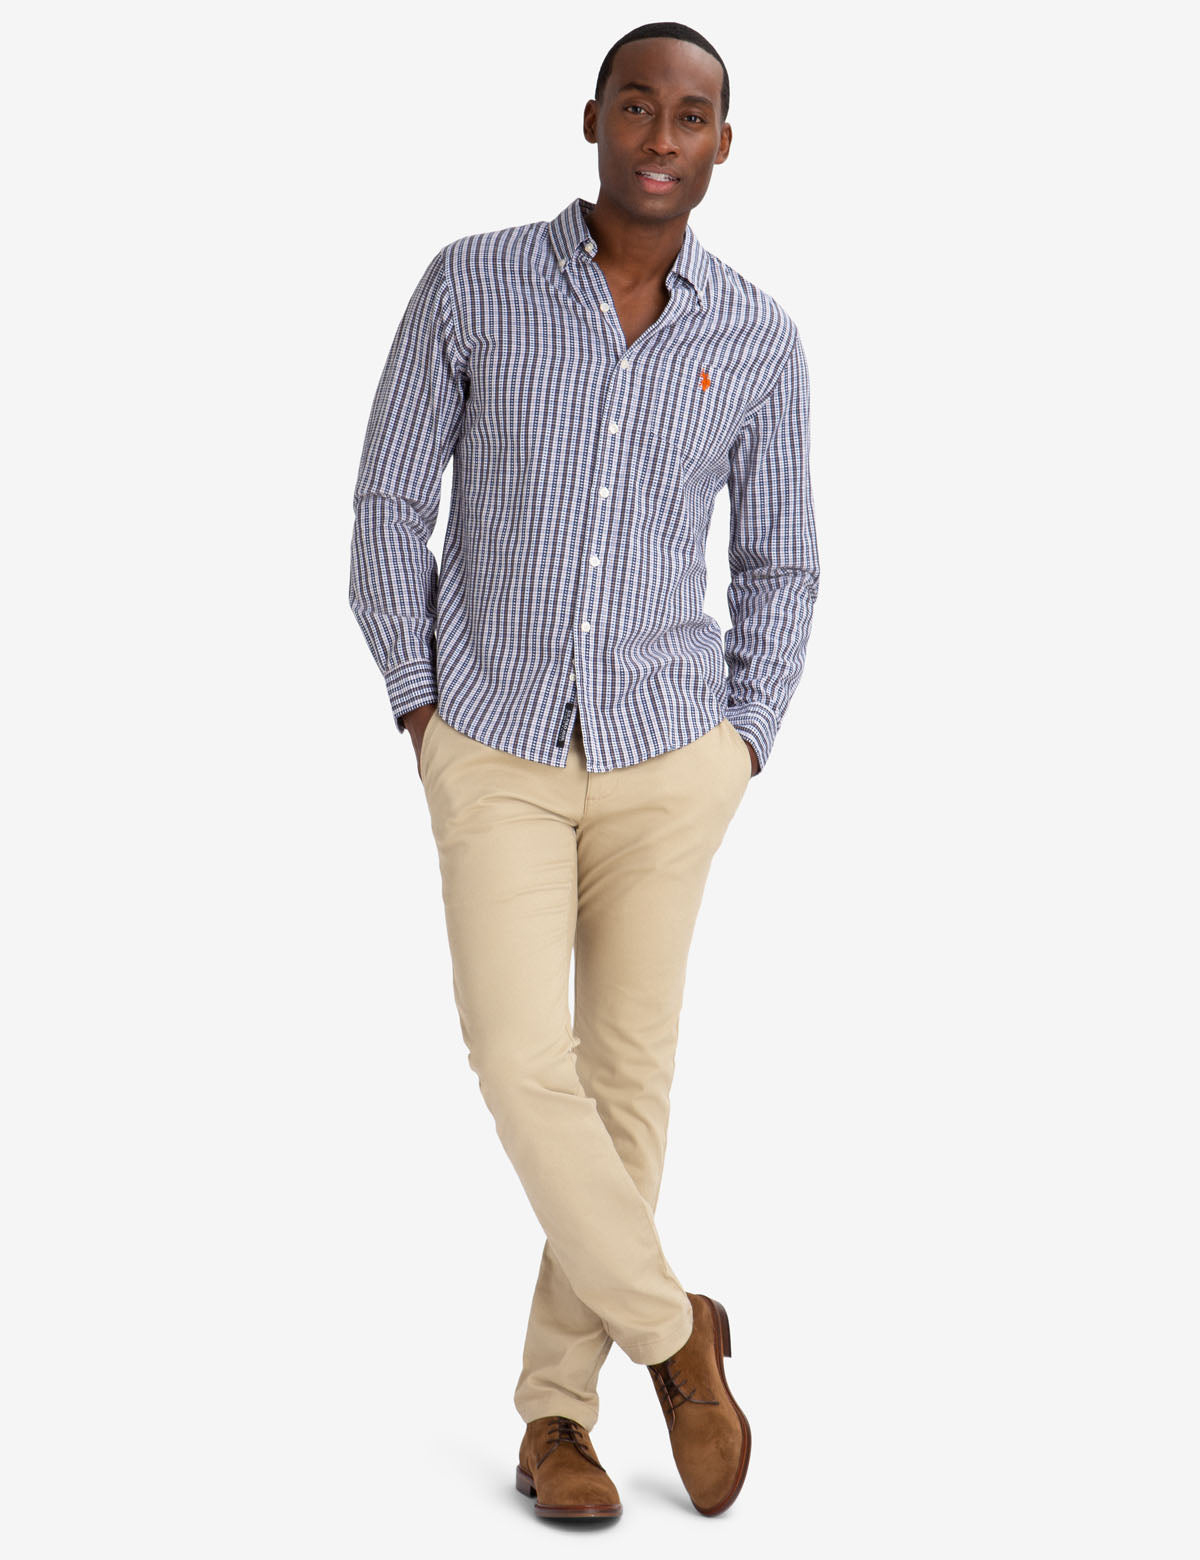 BLACK MALLET SLIM FIT PLAID DOBBY SHIRT - U.S. Polo Assn.